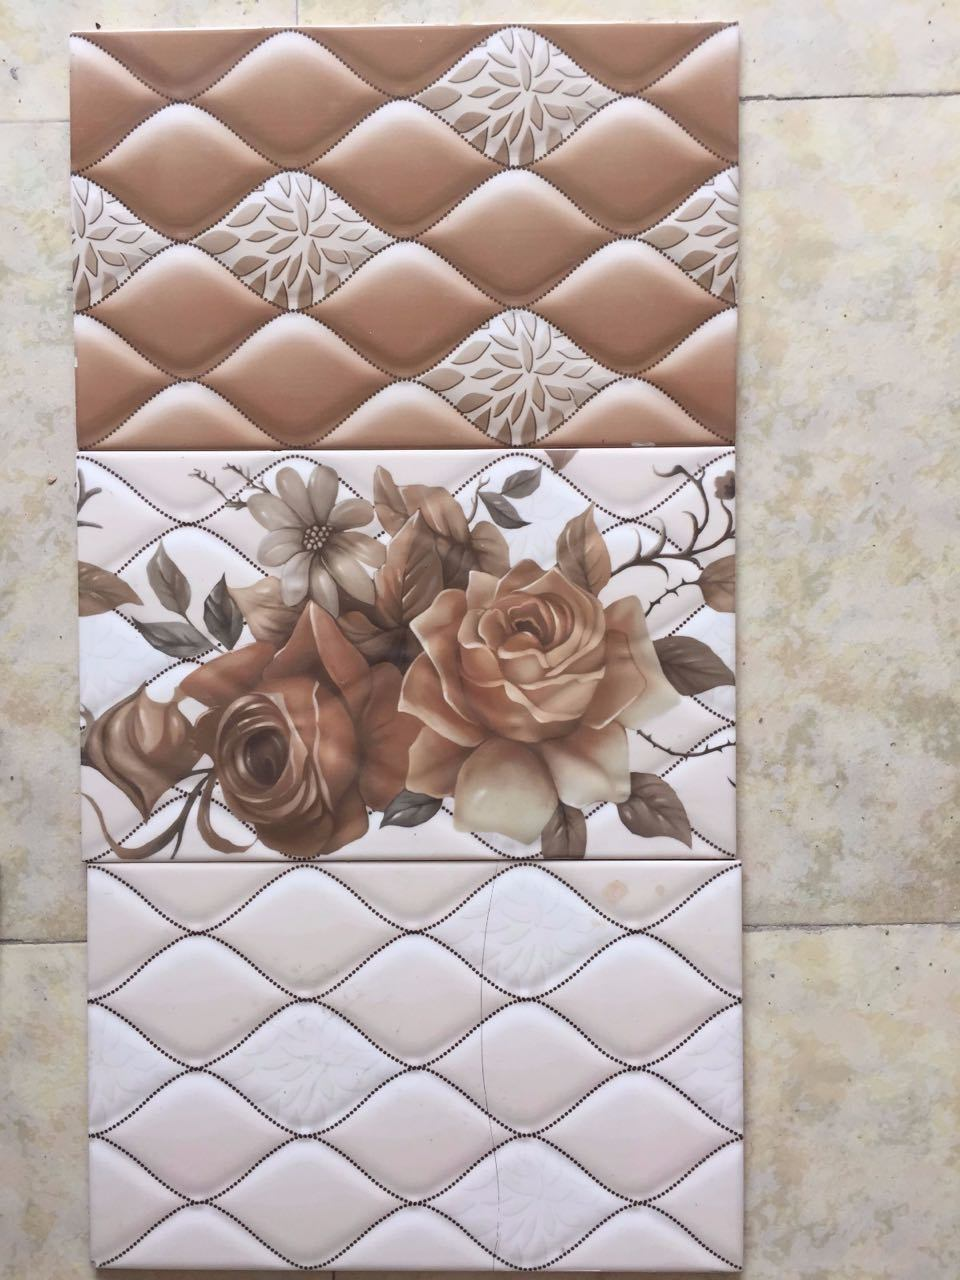 China 3d Inkjet Water Proof Flower Mosaic Rustic Bathroom Ceramic Wall Tile China Ceramic Tile Wall Tile